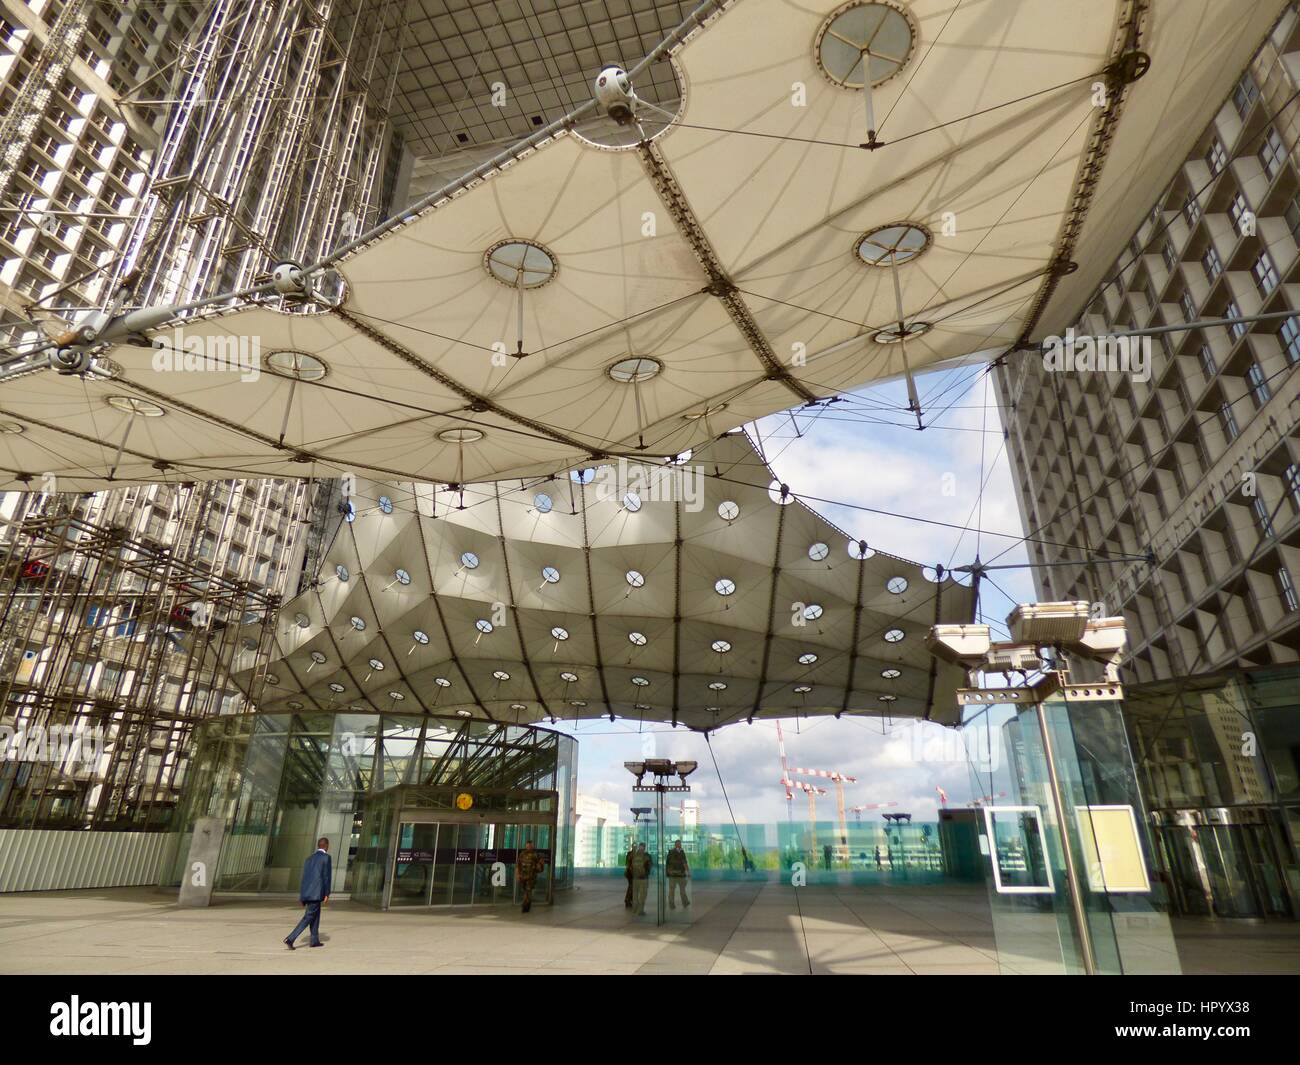 Underneath the canopy close-up. Business district. Grande Arche (Great Arch) at La Défense in the Paris France. & Underneath the canopy close-up. Business district. Grande Arche ...